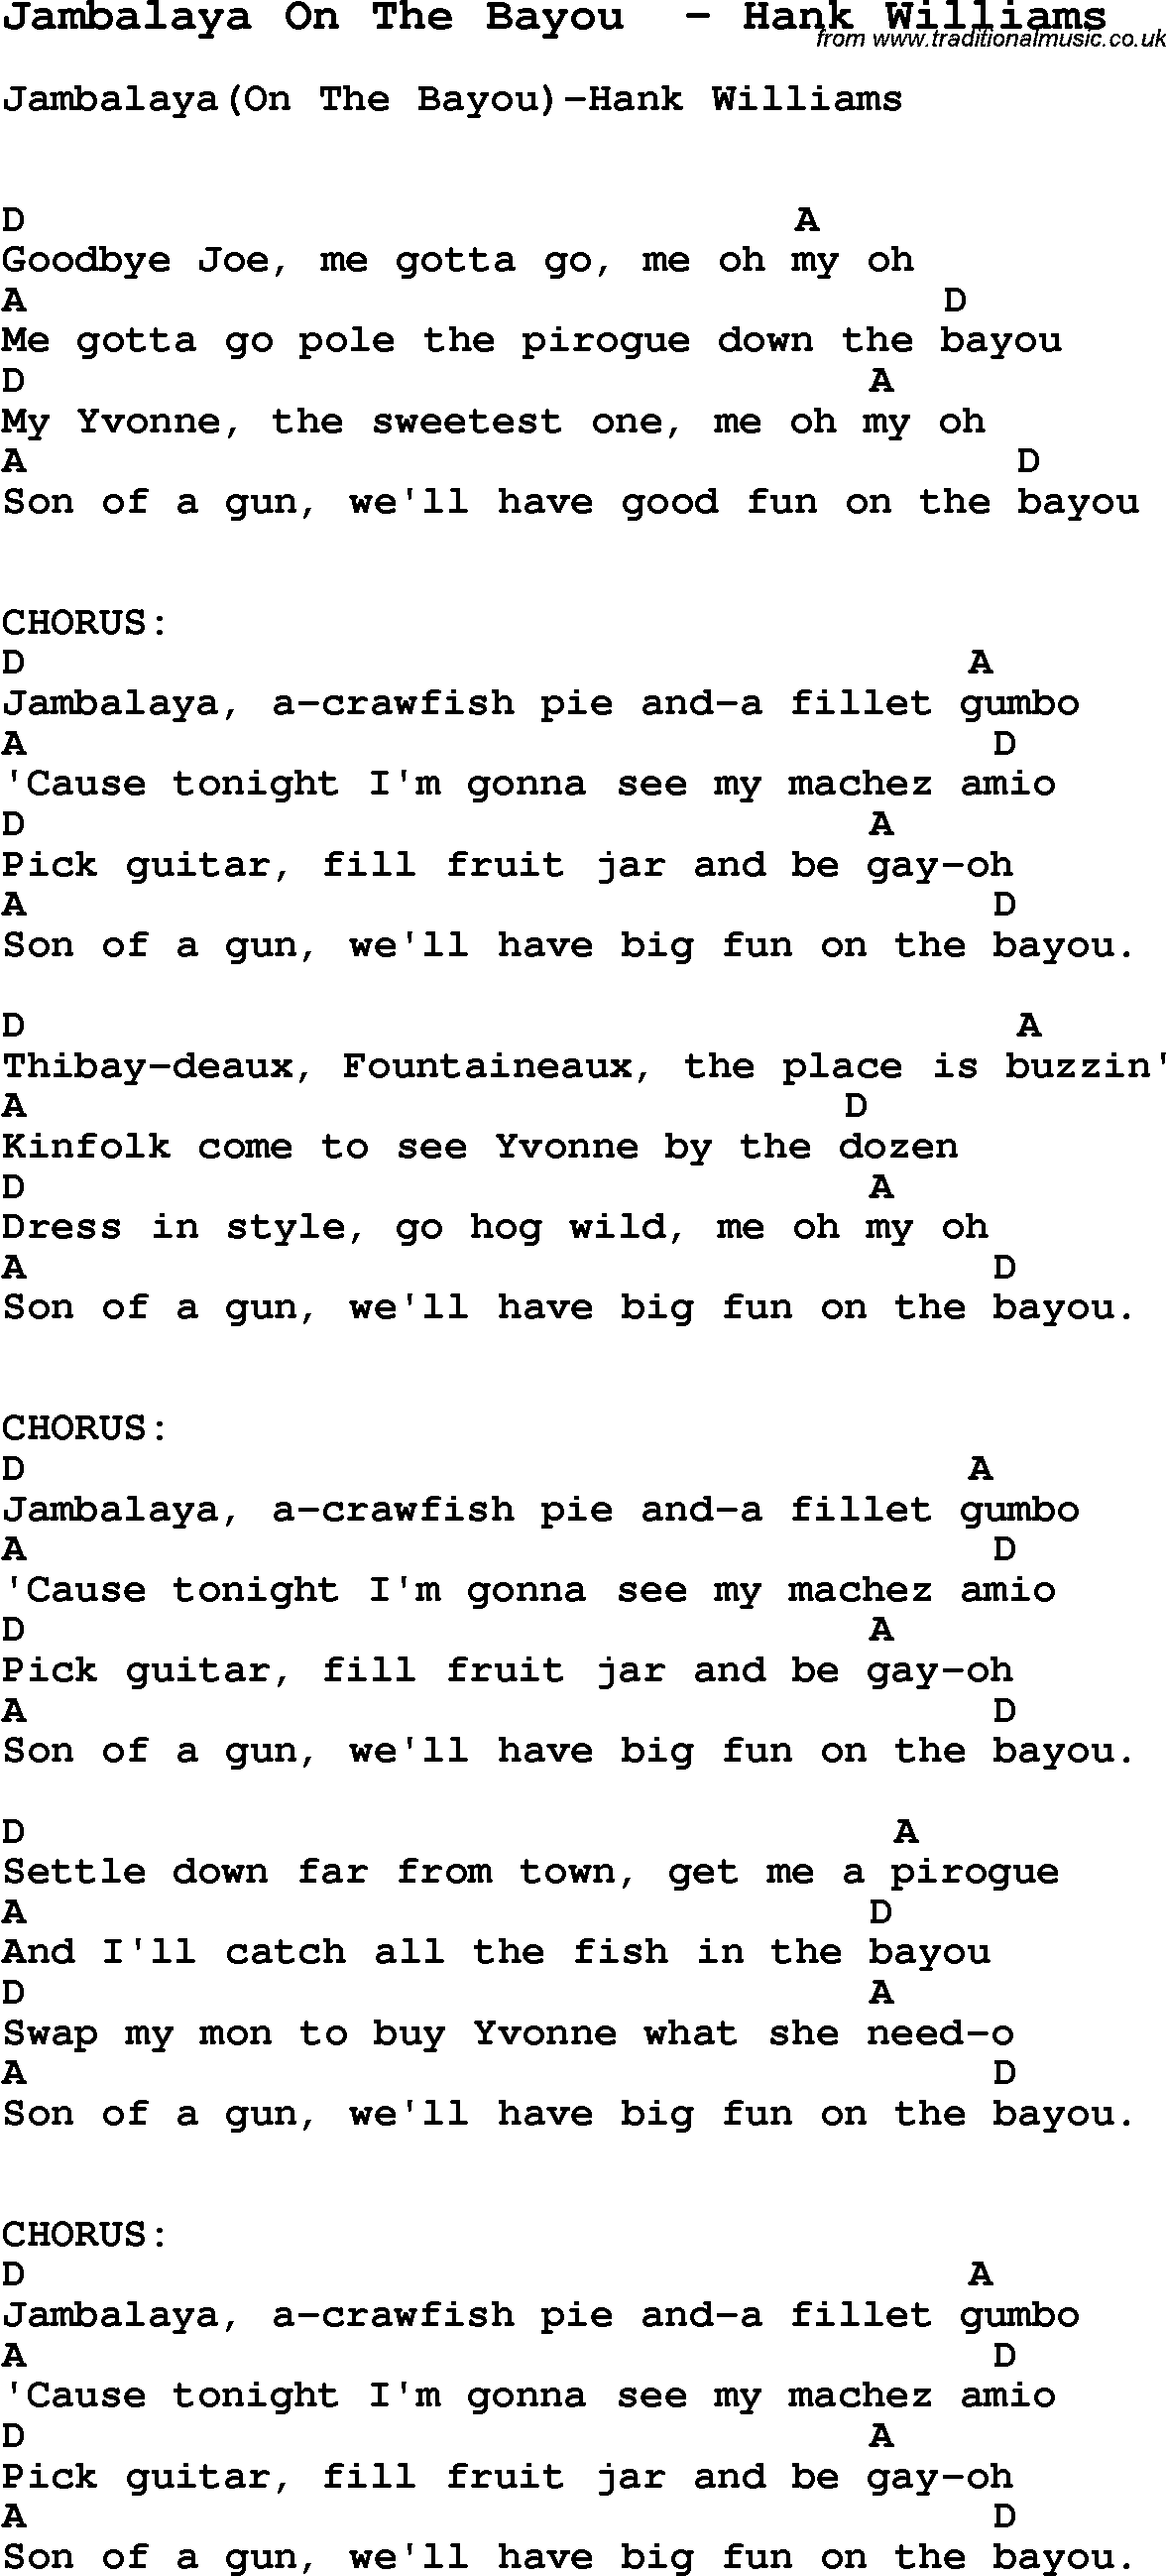 Song Jambalaya On The Bayou by Hank Williams, song lyric for vocal performance plus ...